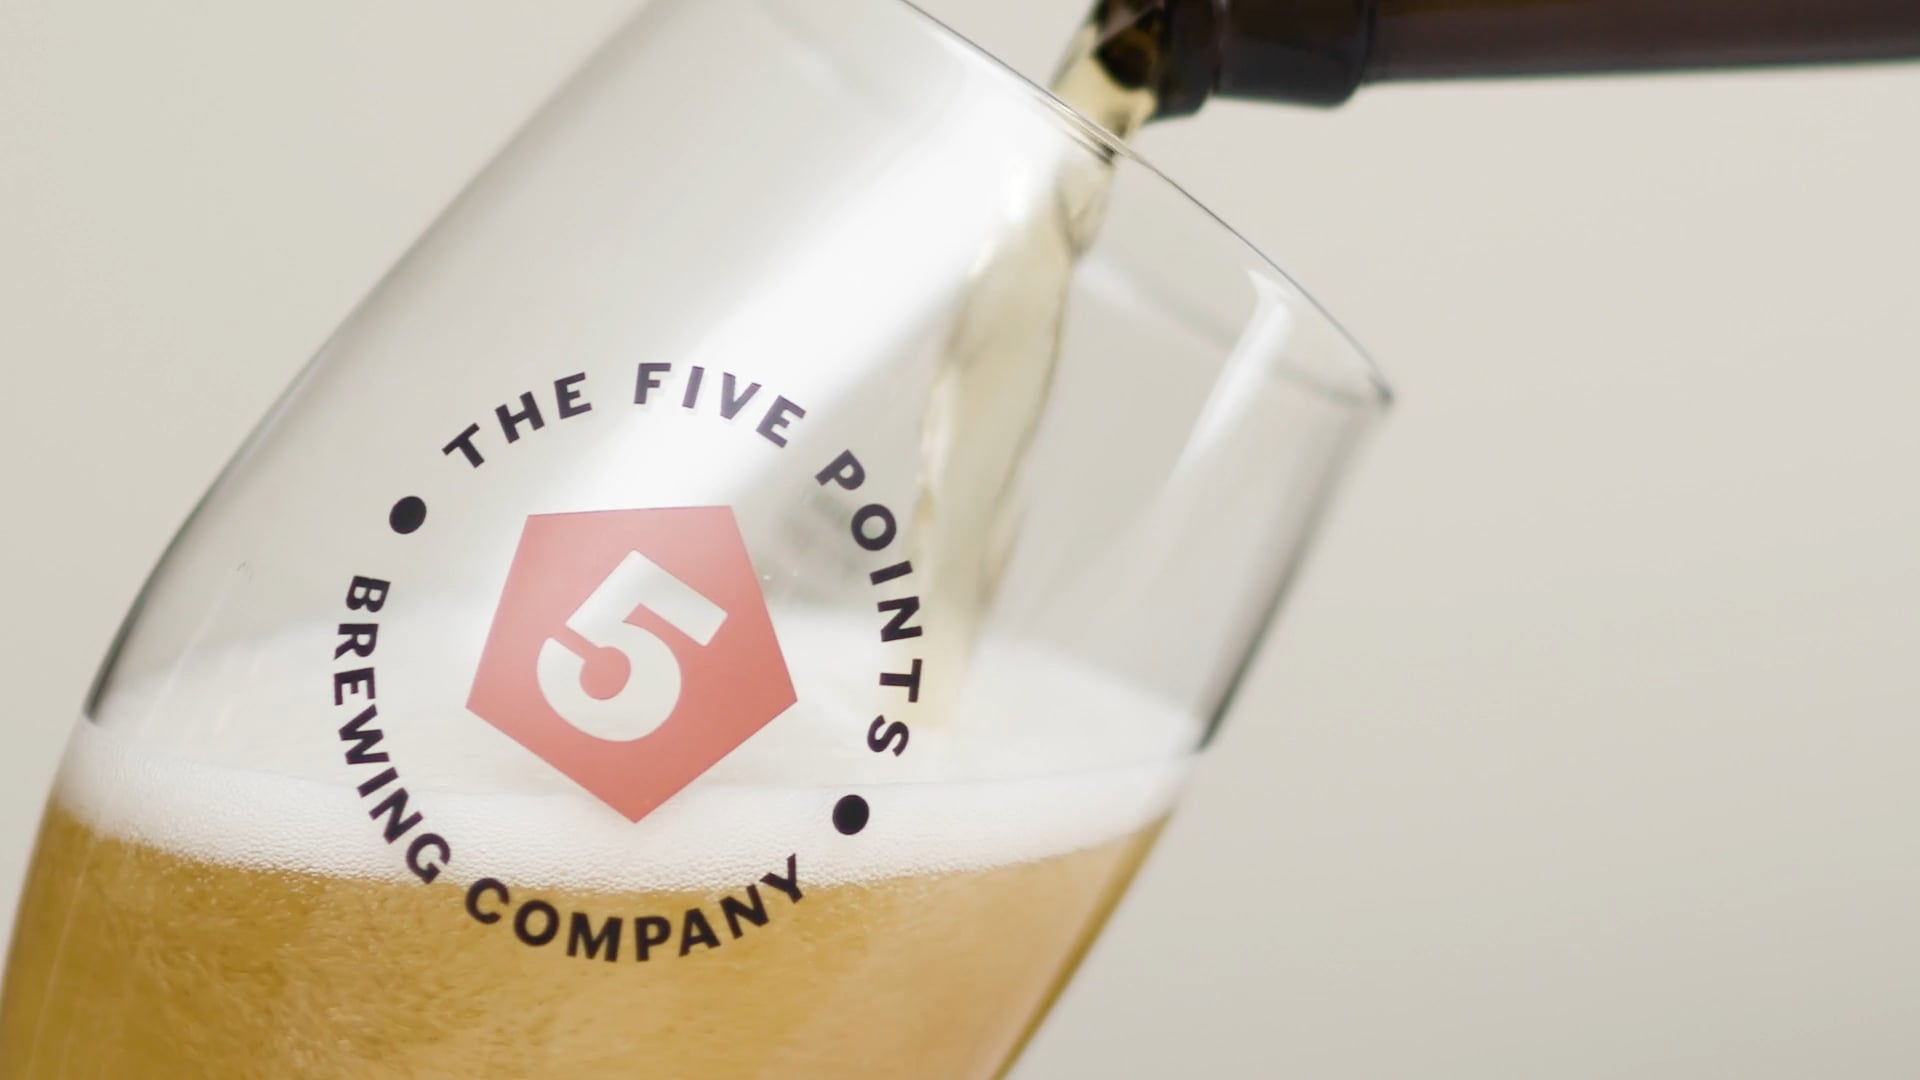 Five Points Brewery - Crowdfunding Film